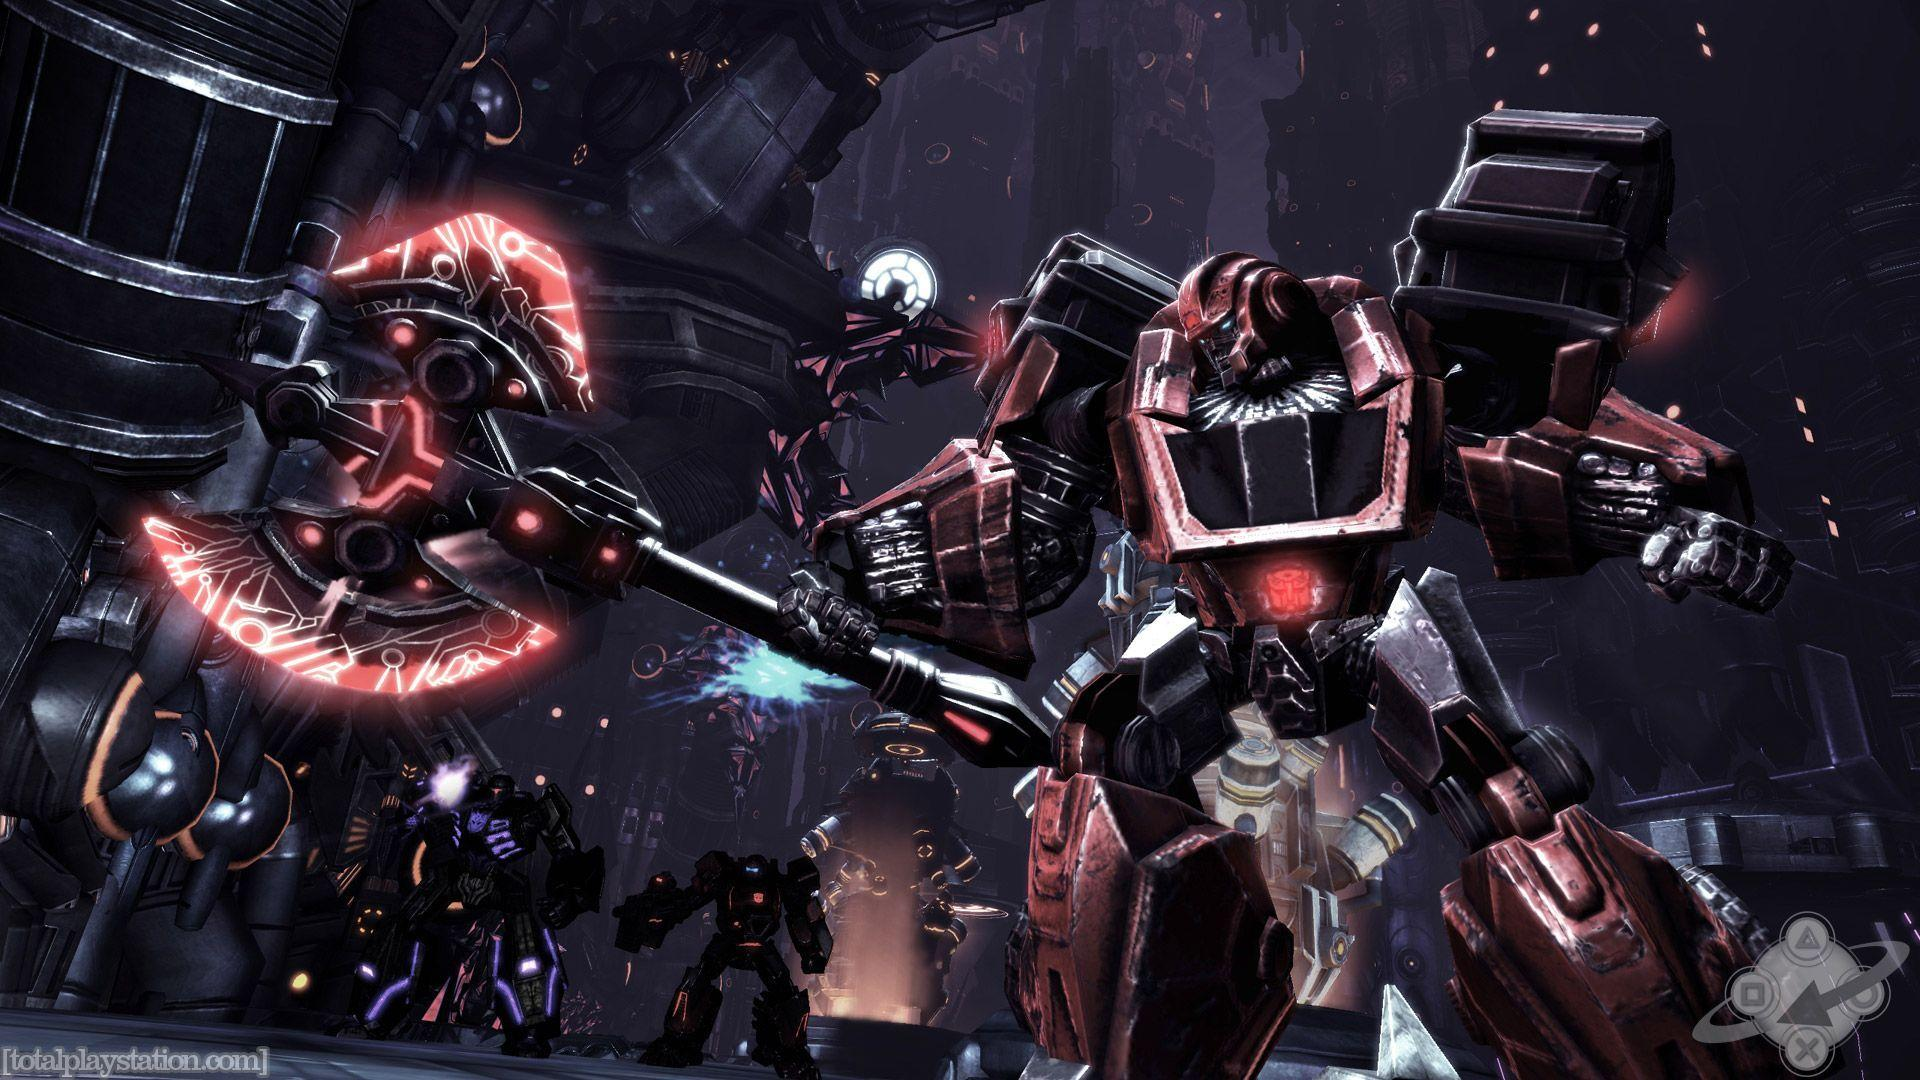 cybertron wallpapers - wallpaper cave